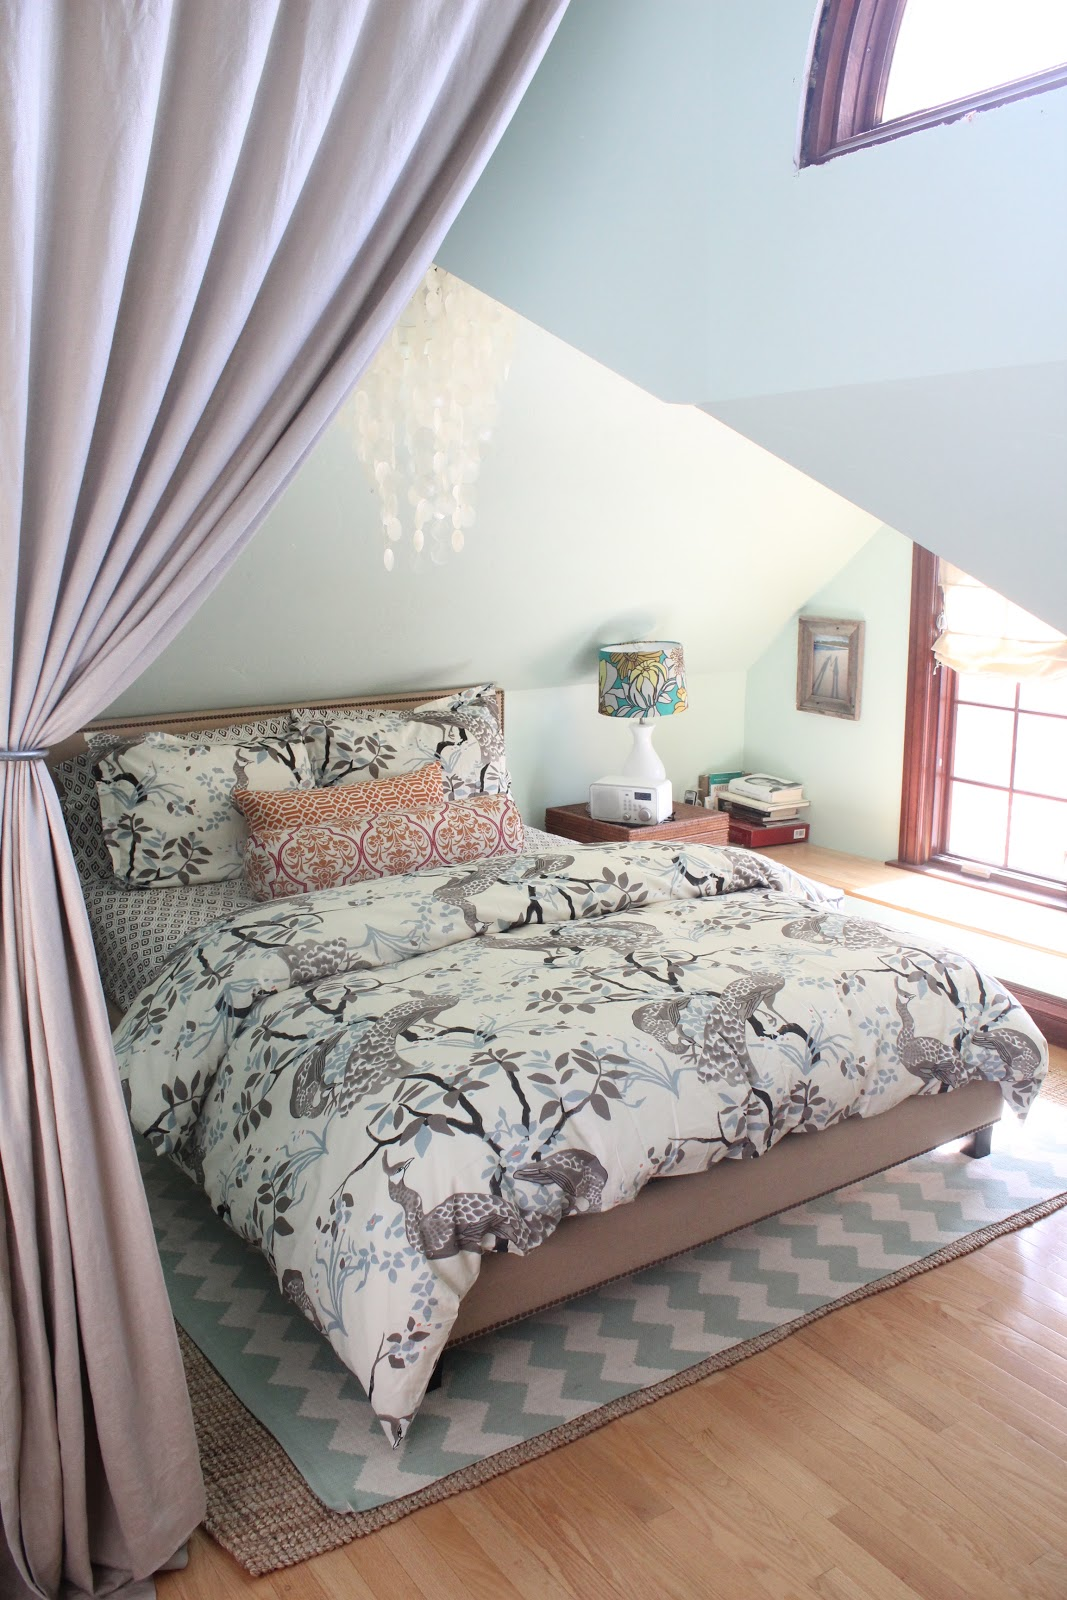 Peacock Comforter | Peacock Bedding Queen | Peacock Bedding